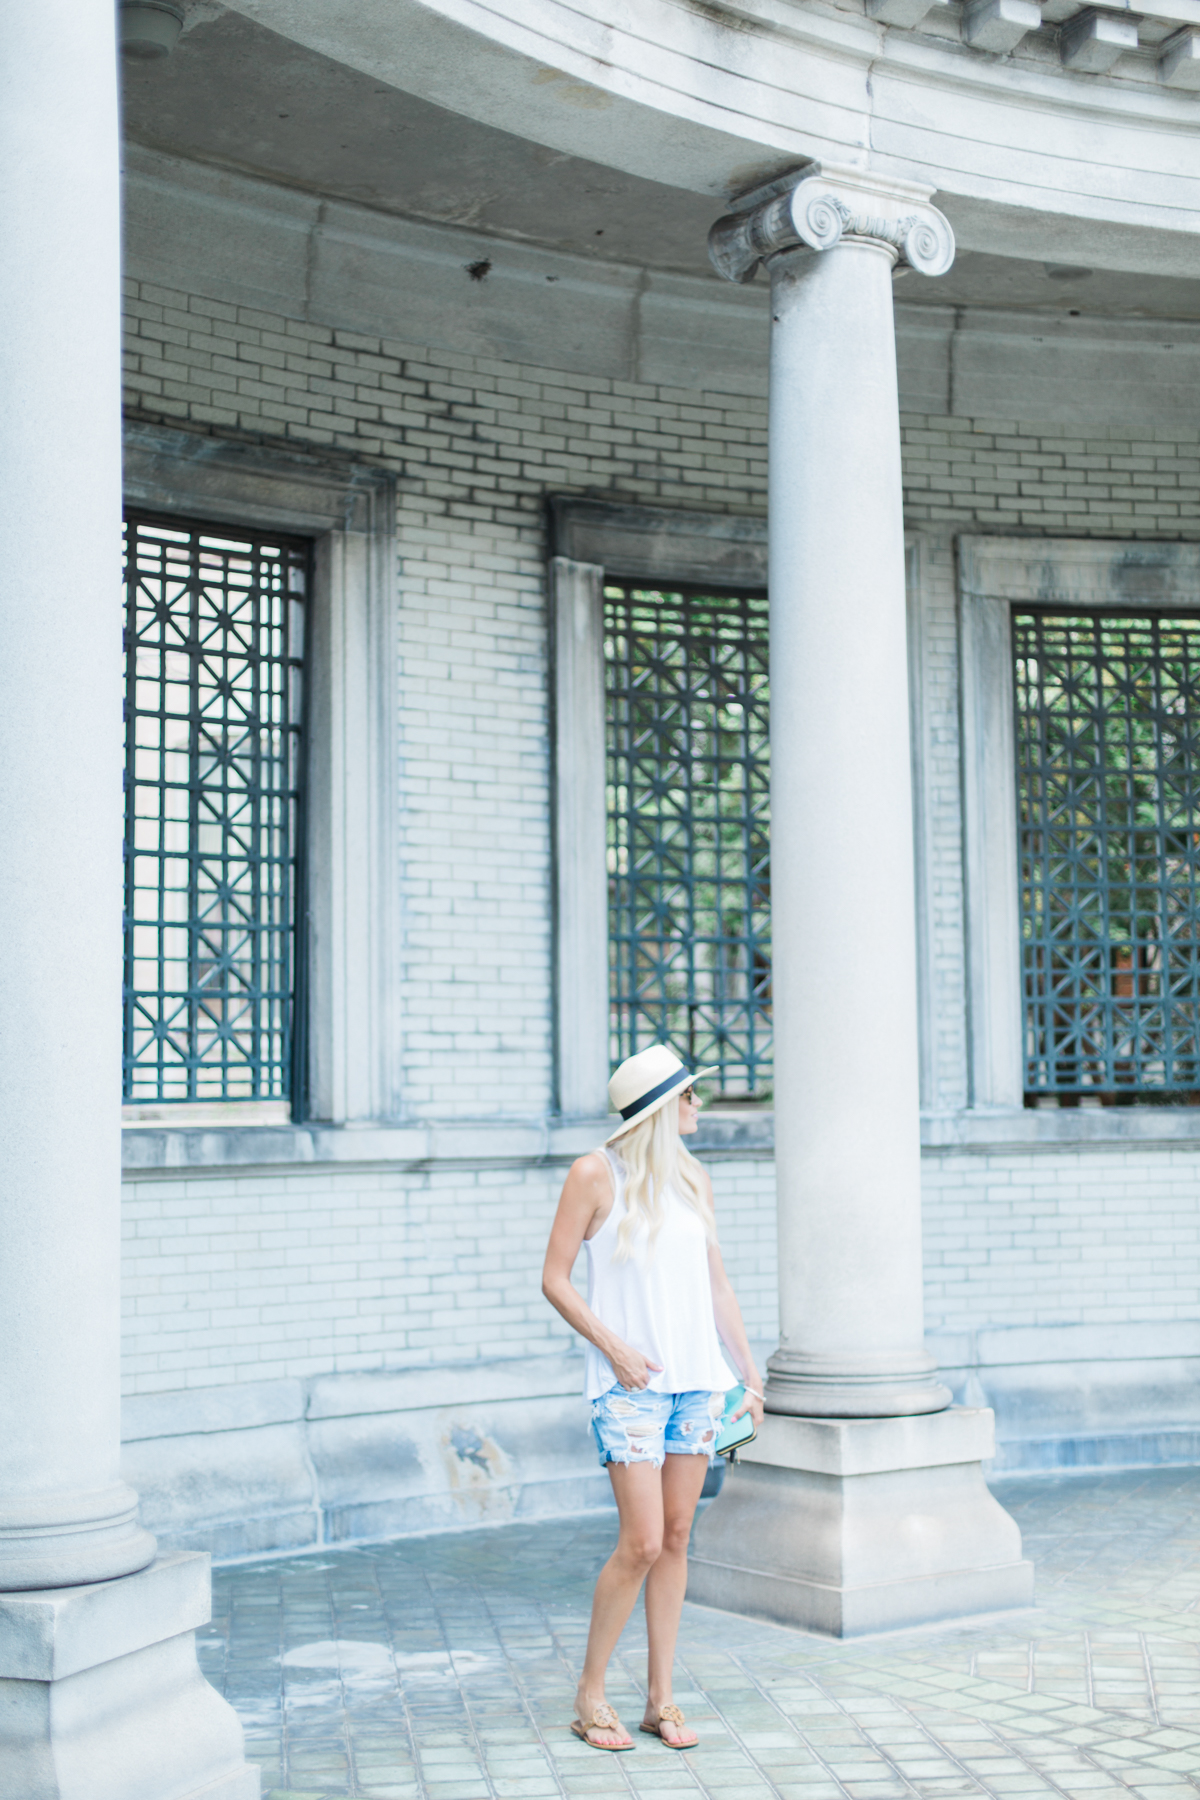 McKenna_Bleu_Fashion_Style_Fall_Travel_Blog_Savannah_Georgia_photo-2740